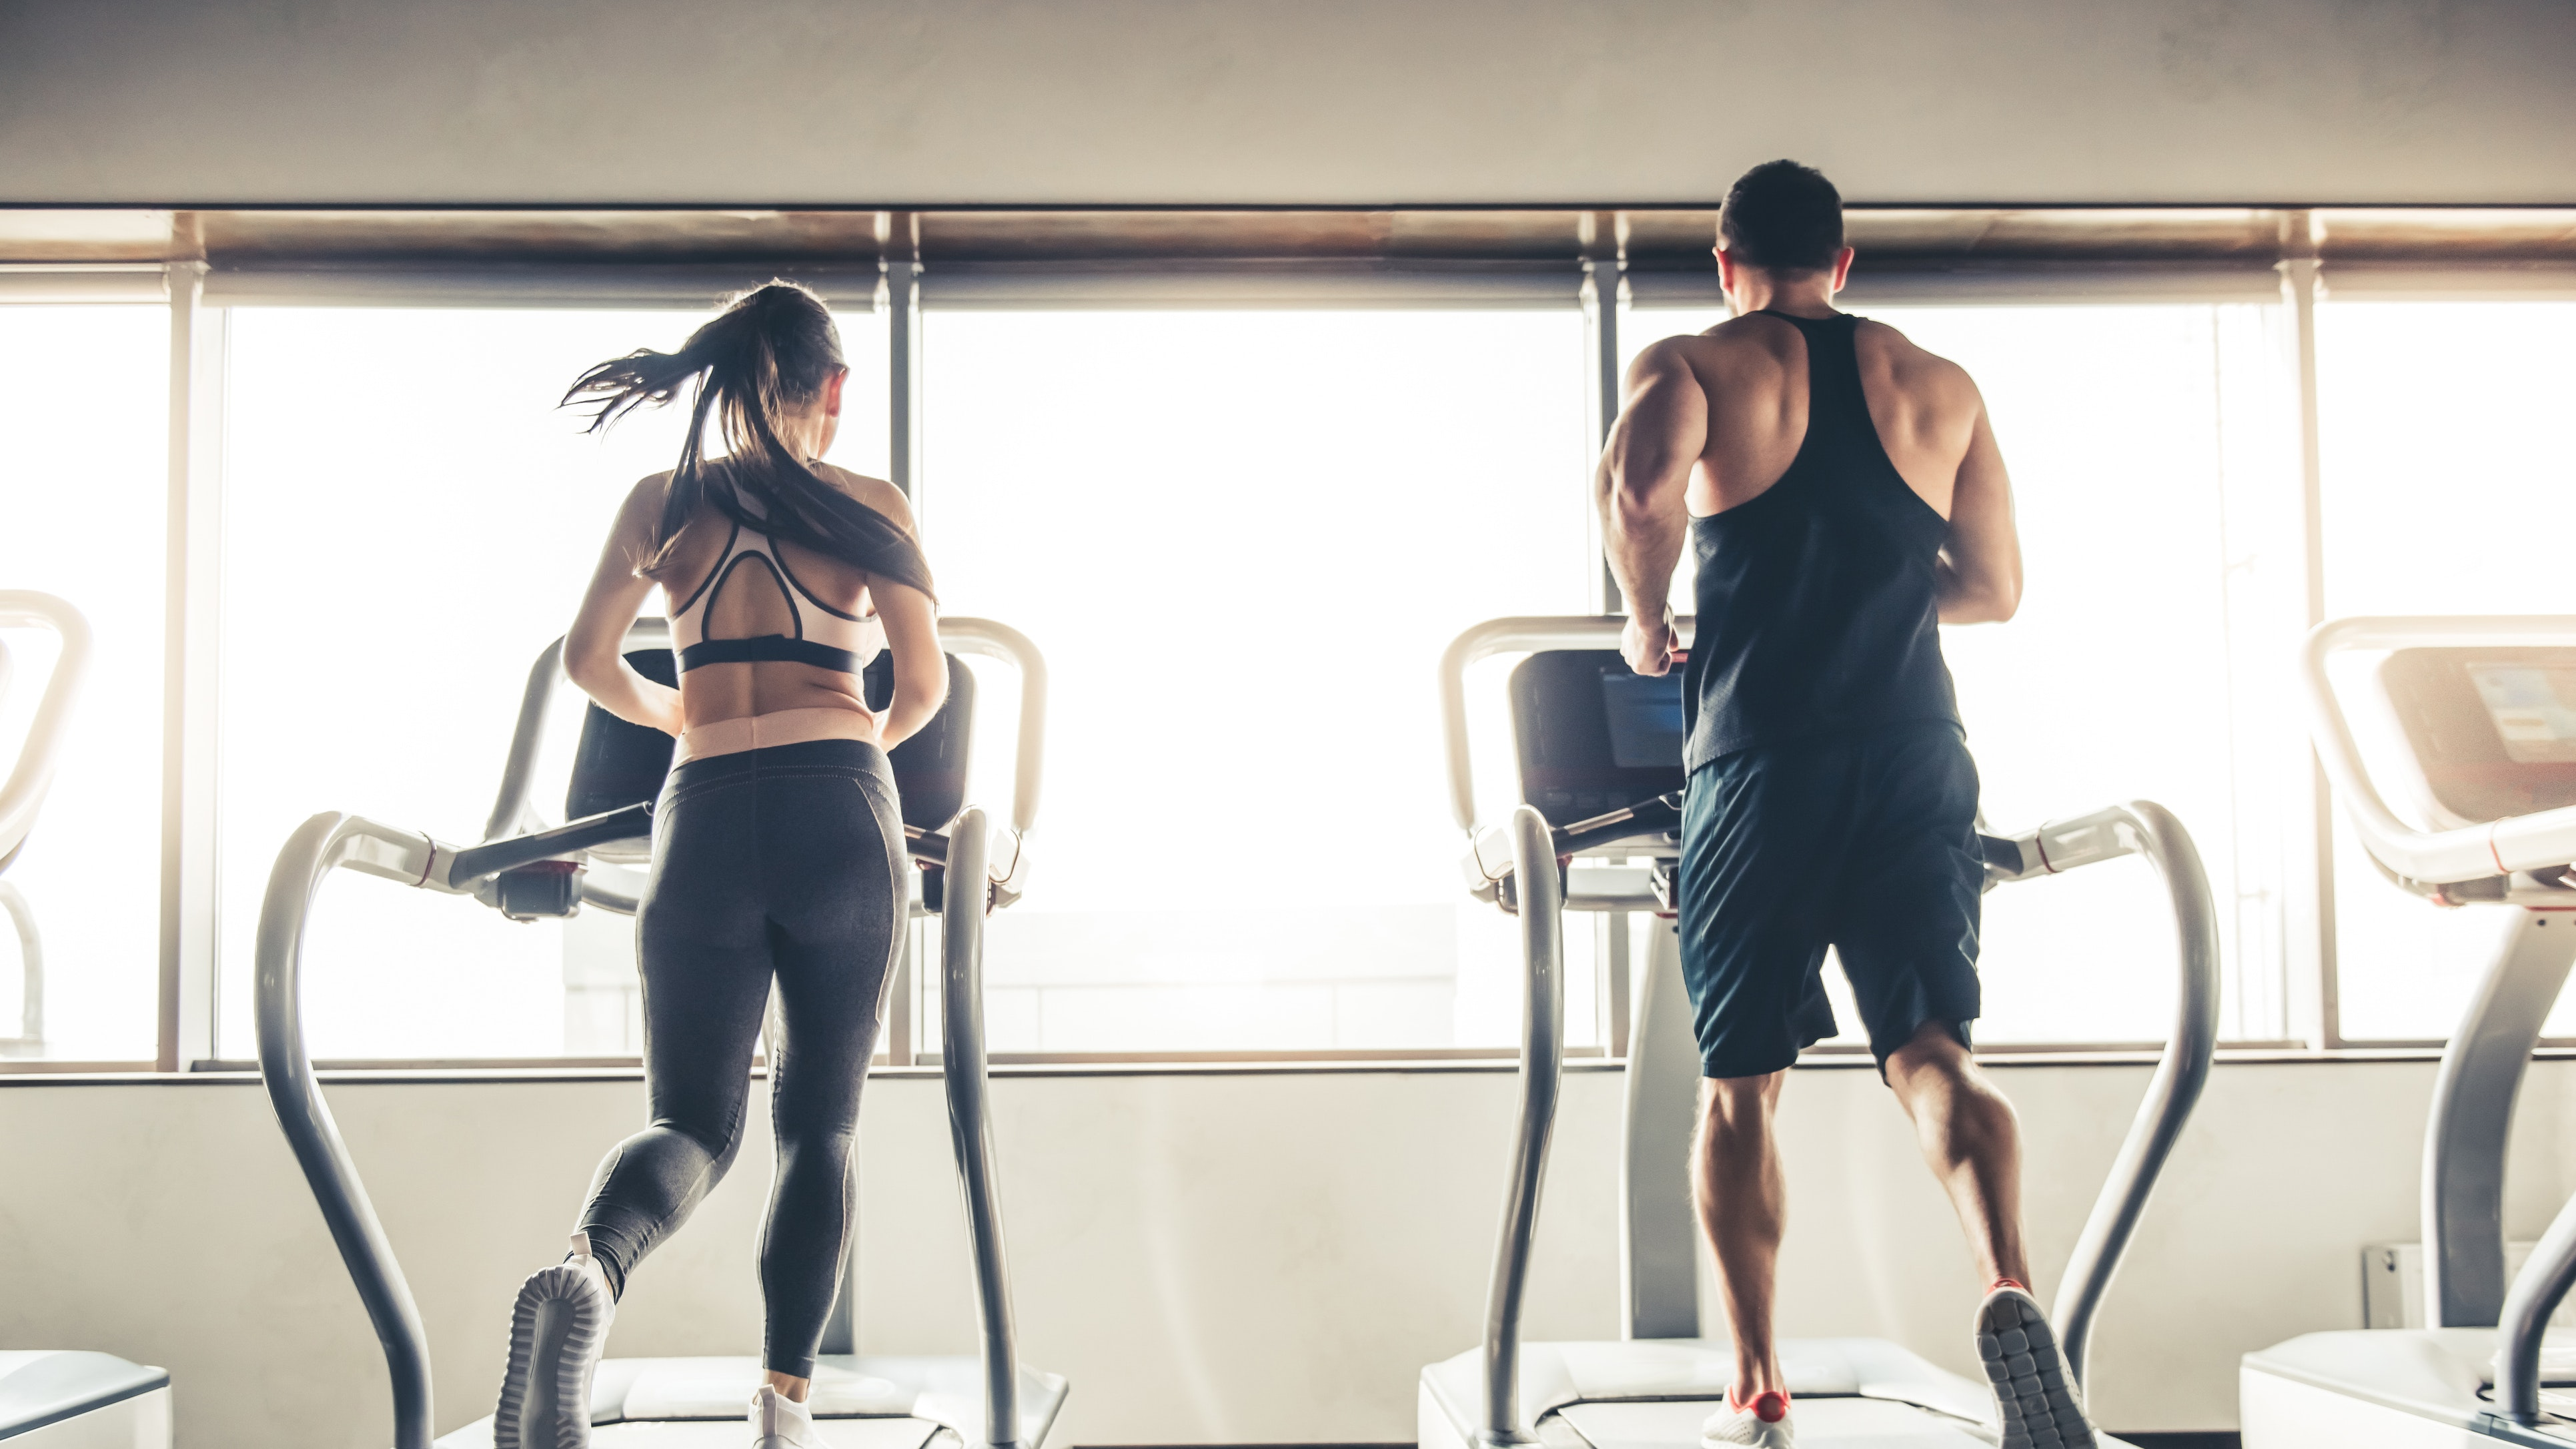 Importance of Cardiovascular Exercises in Daily Routine